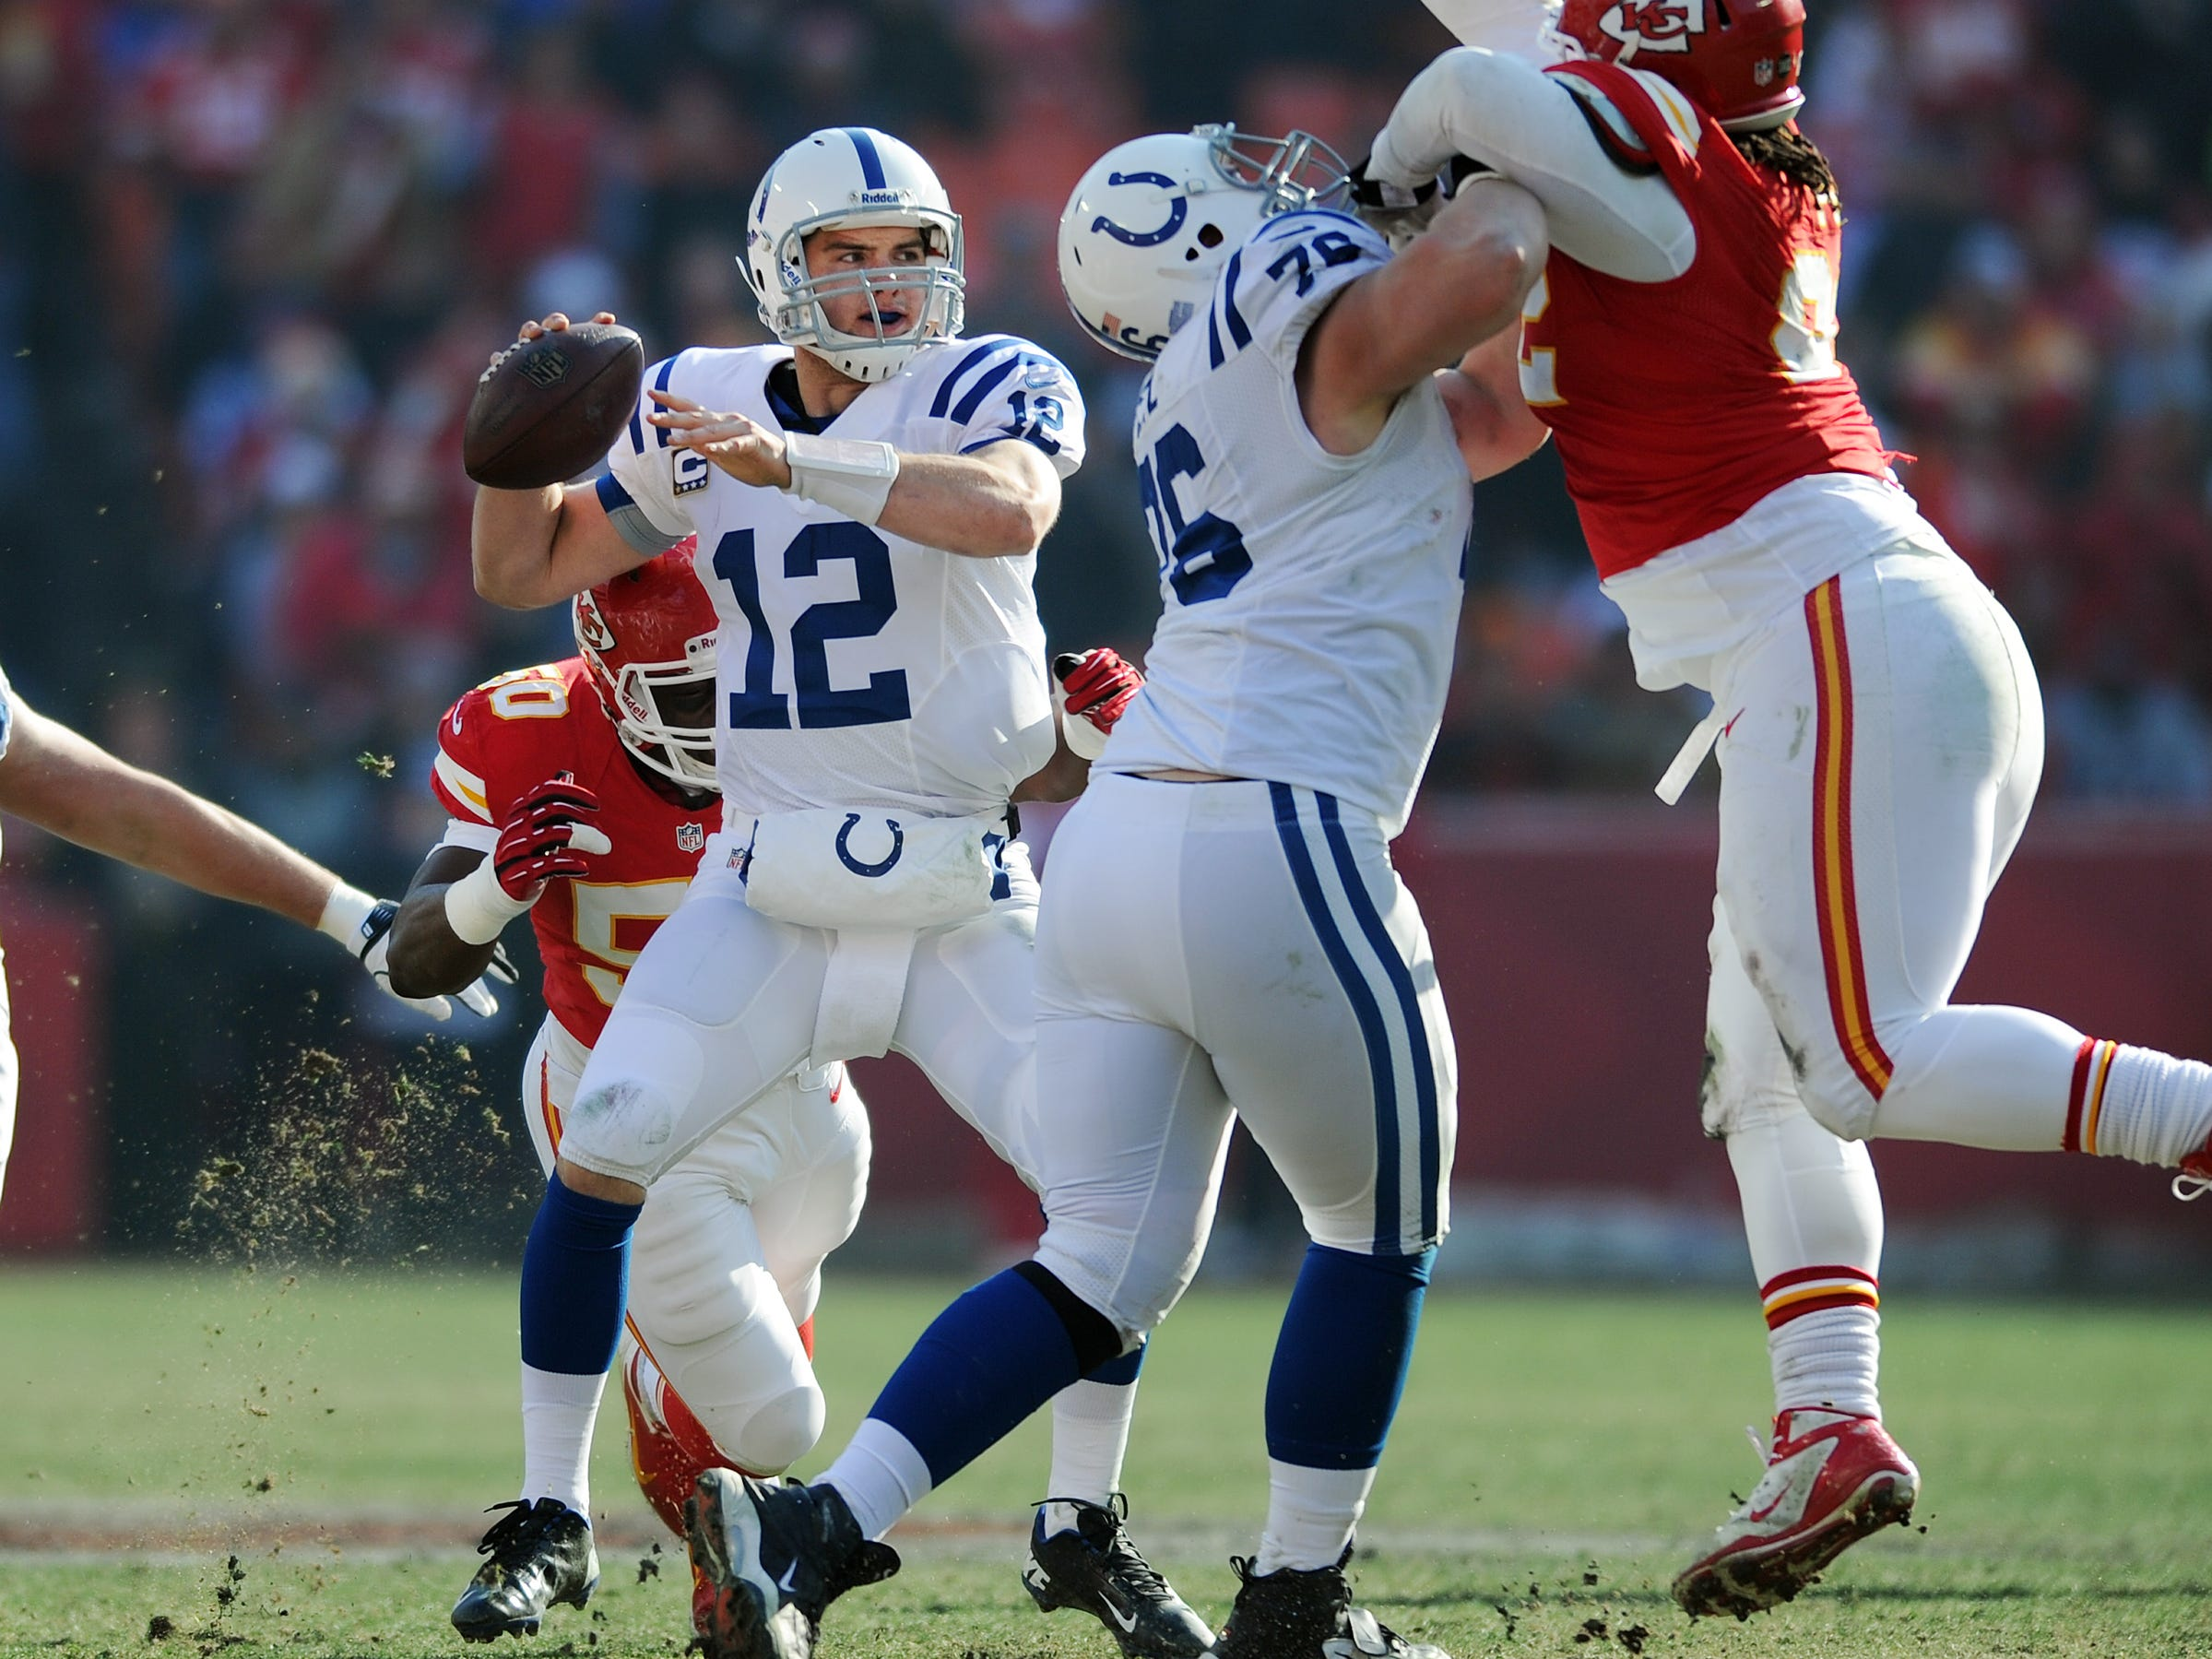 Indianapolis Colts QB Andrew Luck looks to pass as Kansas City Chiefs Justin Houston, left, pressures him in a game  at Arrowhead Stadium in Kansas City. The Colts defeated the Chiefs 20-13. Matt Kryger / The Star